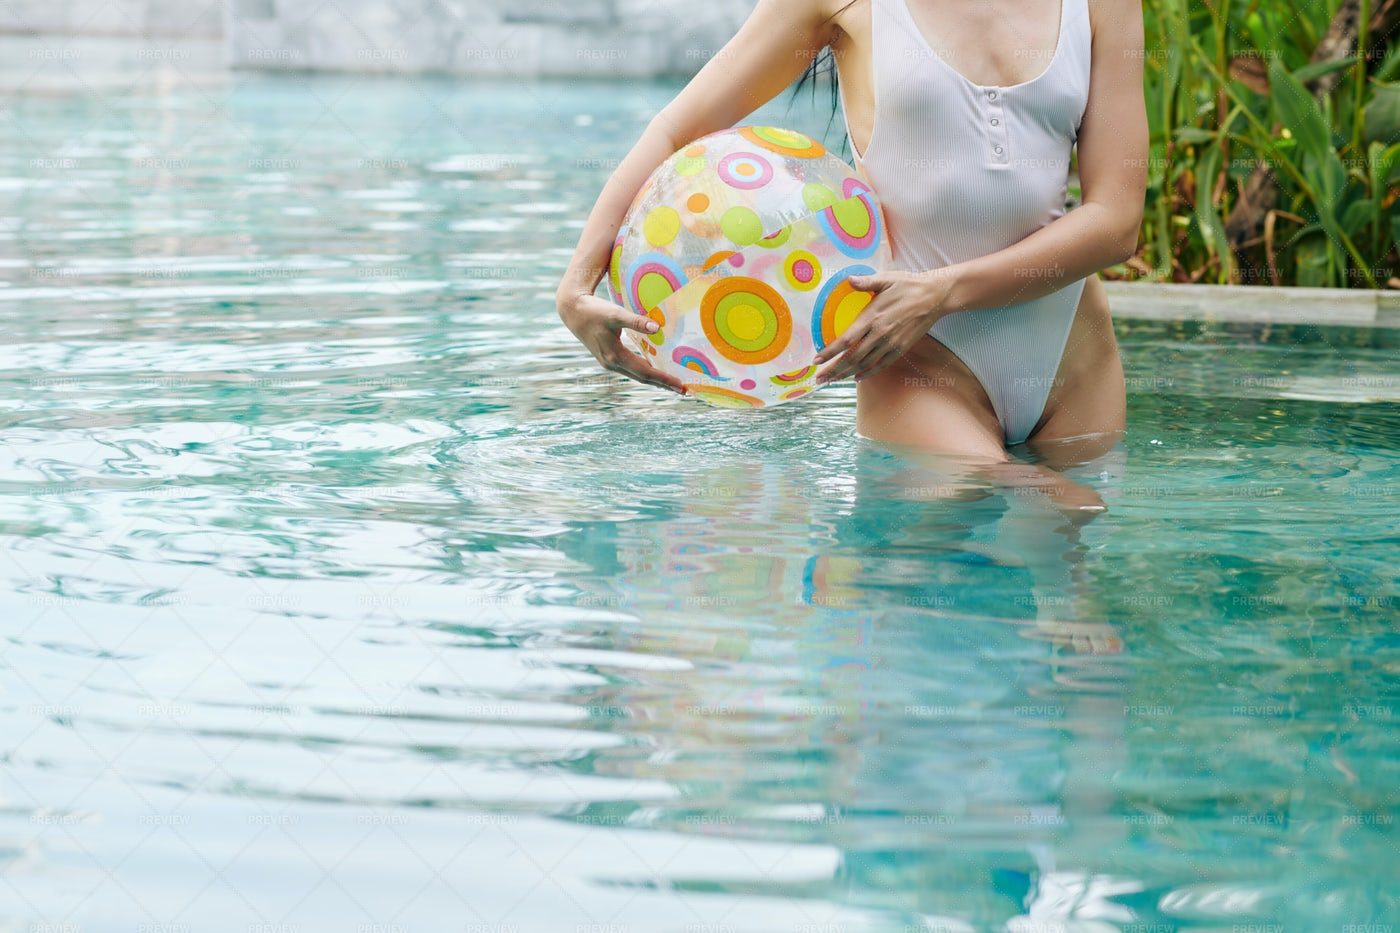 Woman Standing In Pool With Inflatable B: Stock Photos